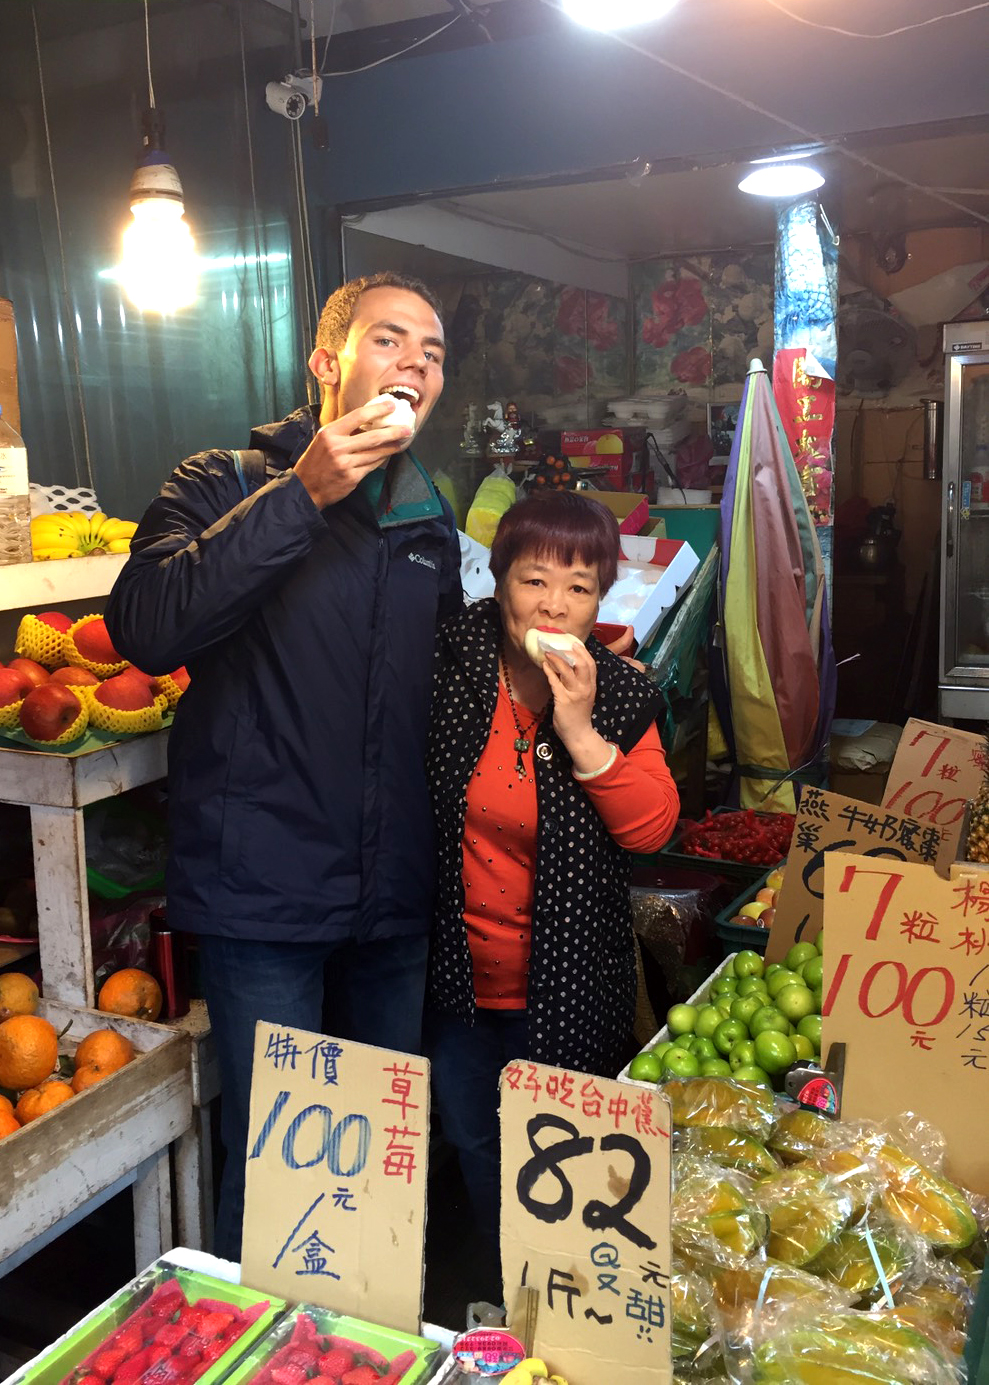 Young man standing next to older woman holding food in their mouths in the middle of a stand with fruits for sale